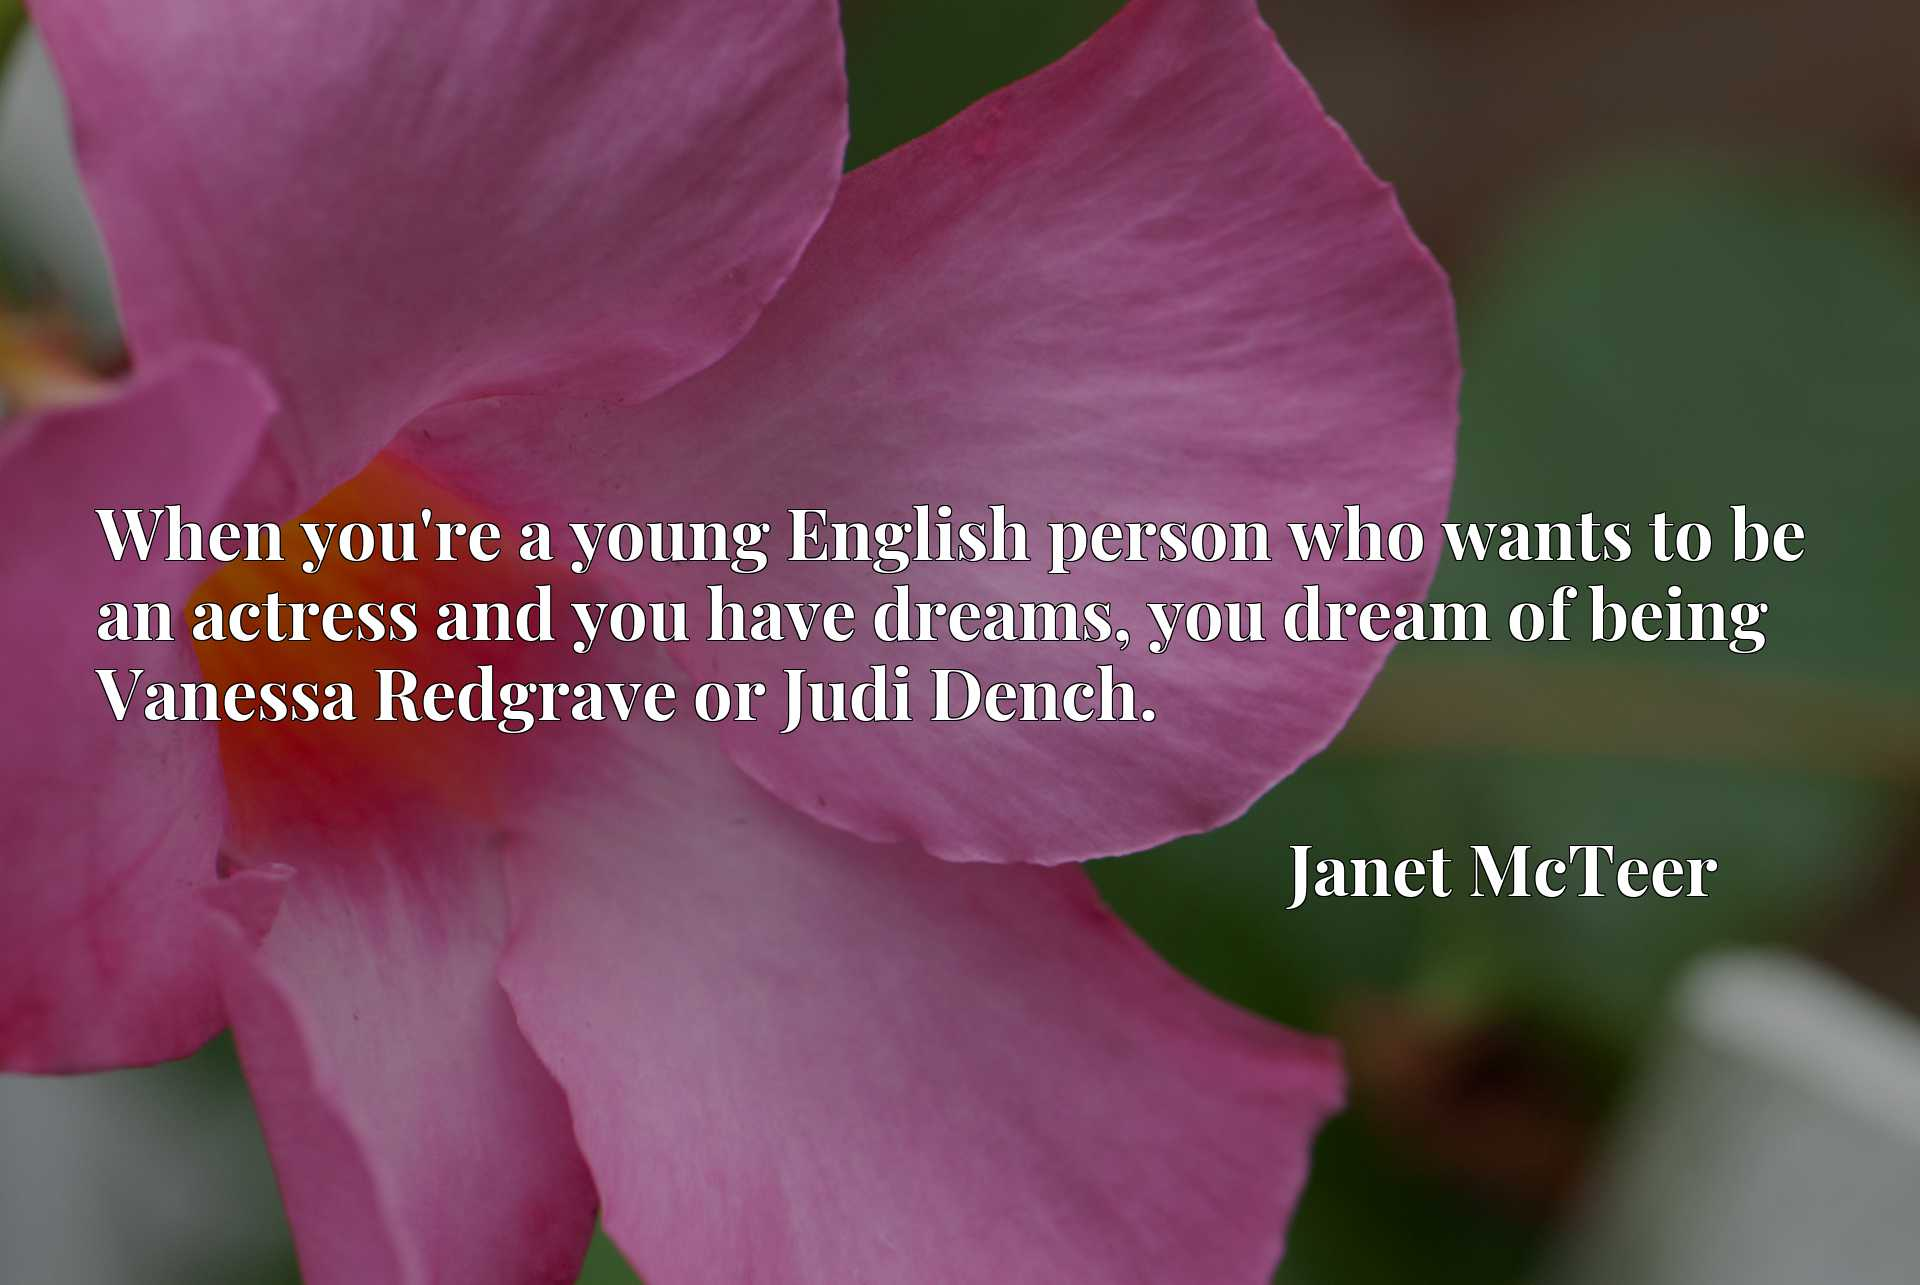 When you're a young English person who wants to be an actress and you have dreams, you dream of being Vanessa Redgrave or Judi Dench.